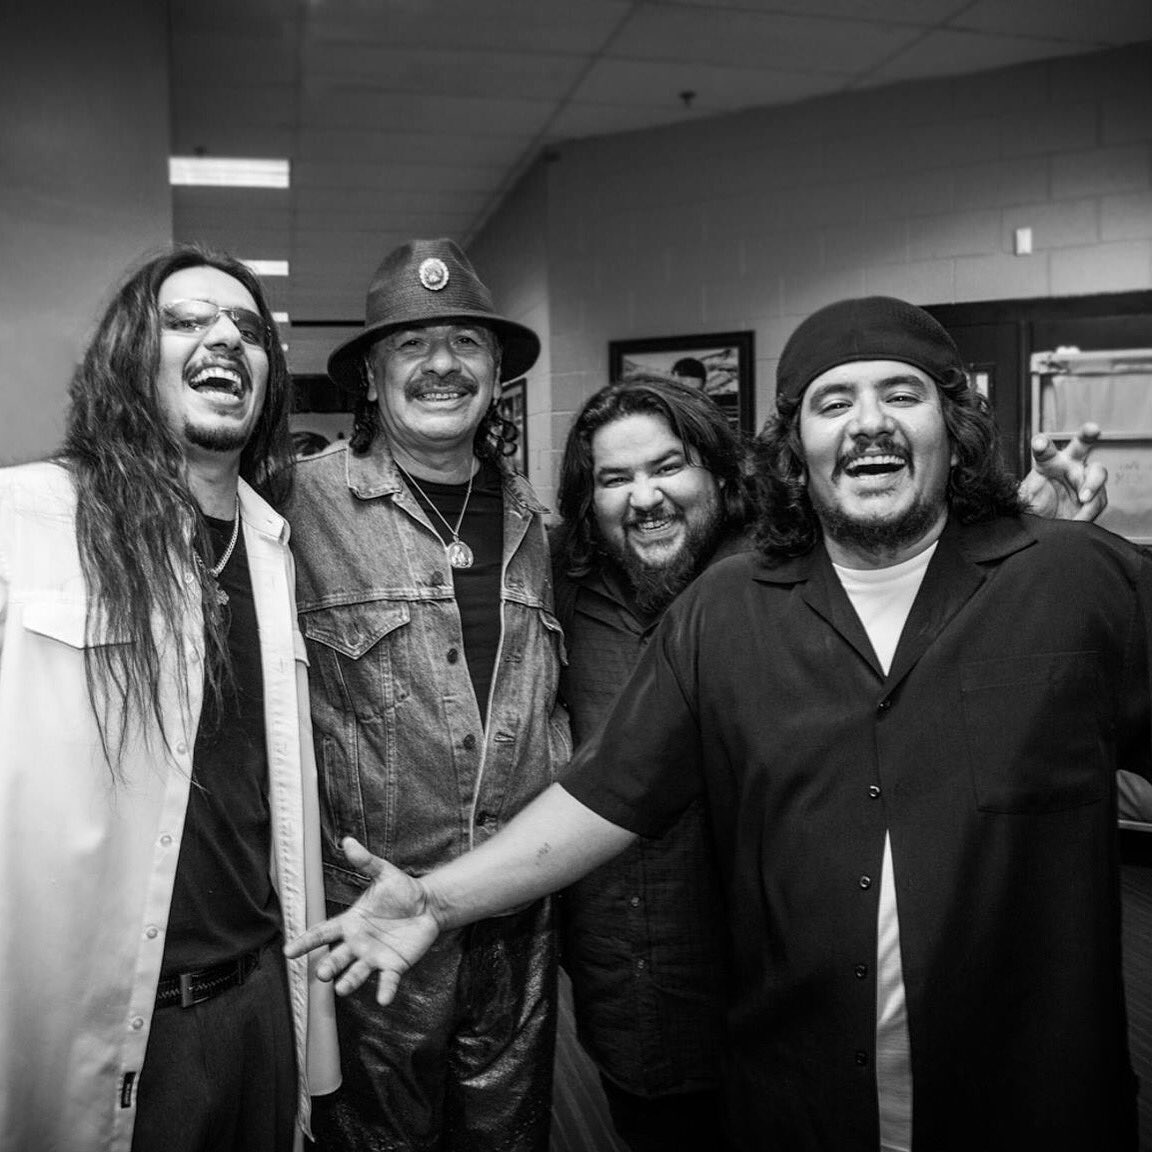 Happy Birthday @SantanaCarlos! https://t.co/90iiZIQ7uy